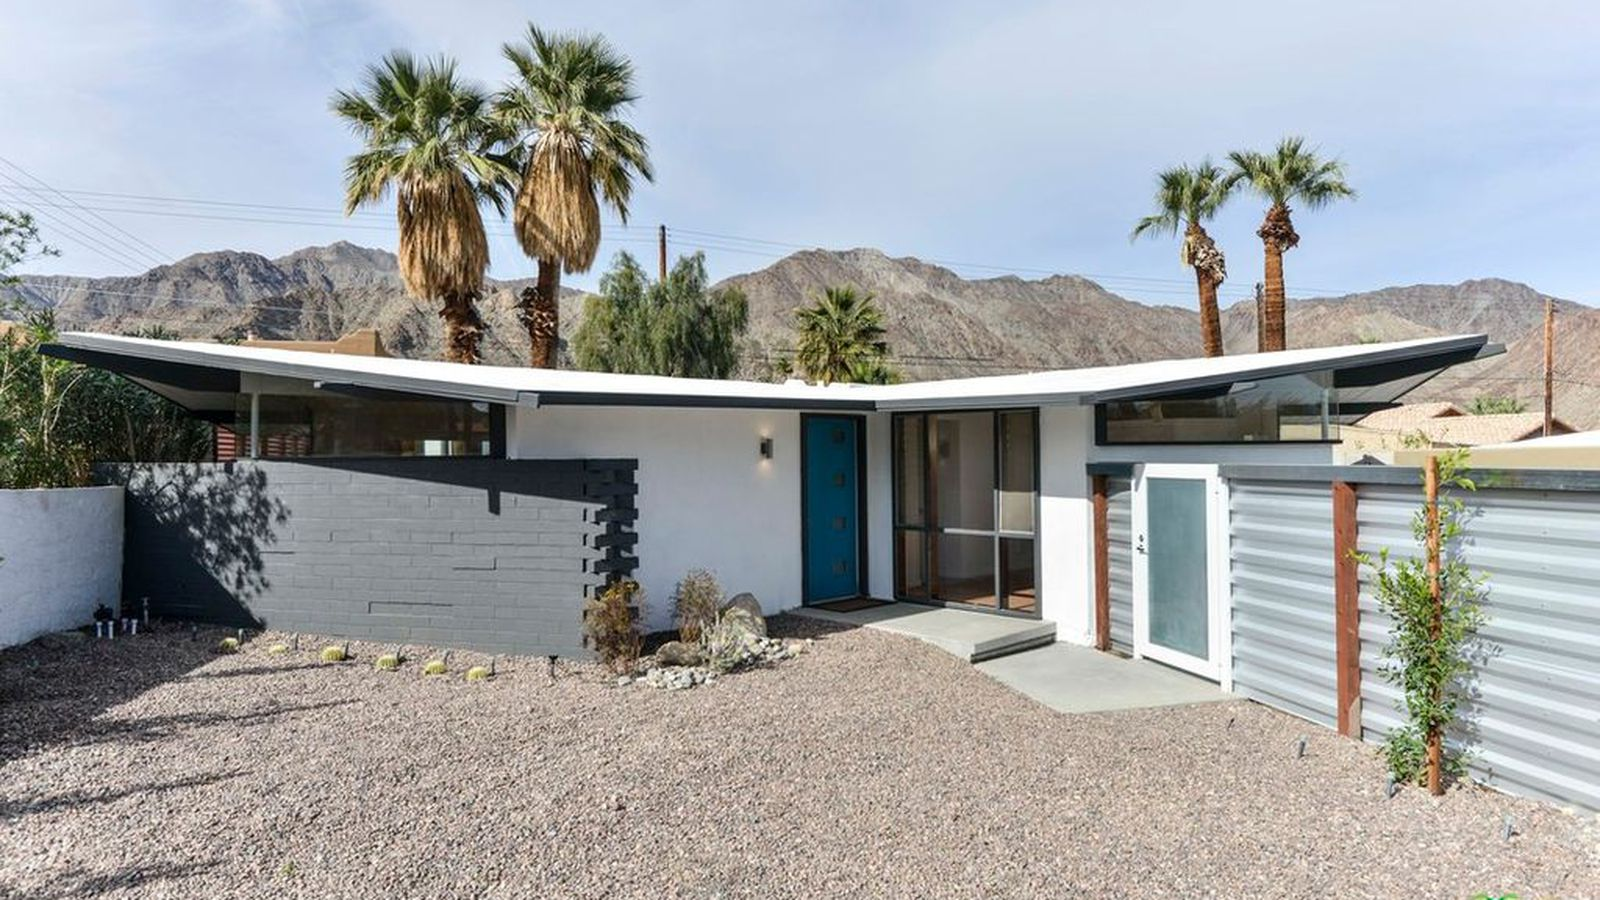 Midcentury bungalow in cali desert can be yours for 250k for Building a house for 250k